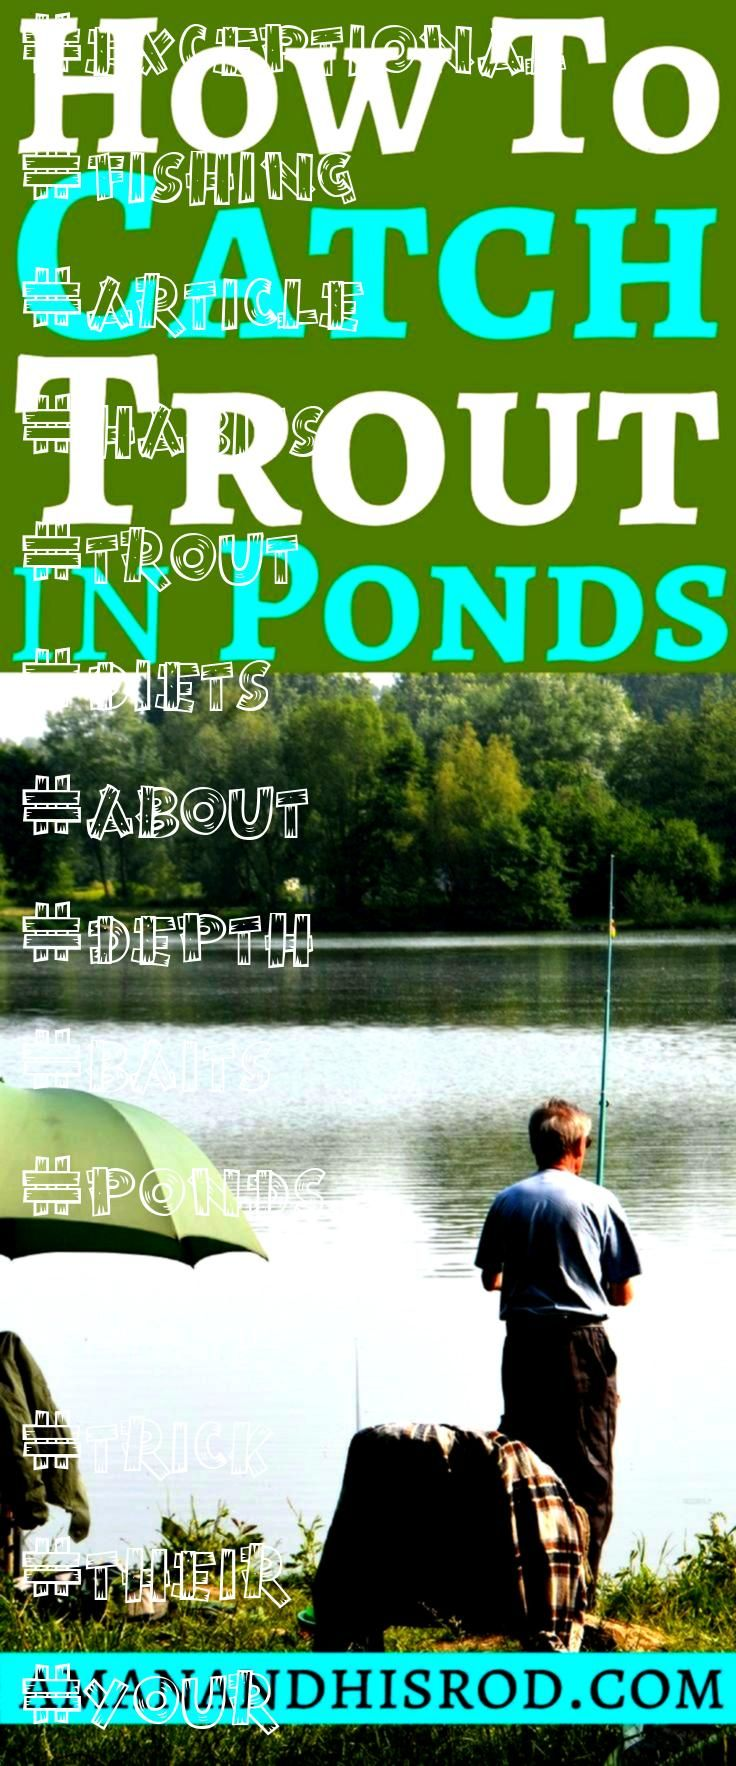 fishing to catch in ponds How to catch trout in ponds is an in depth article about the habits of trout as well as their diets I give you 6 exceptional fishing to use on y...